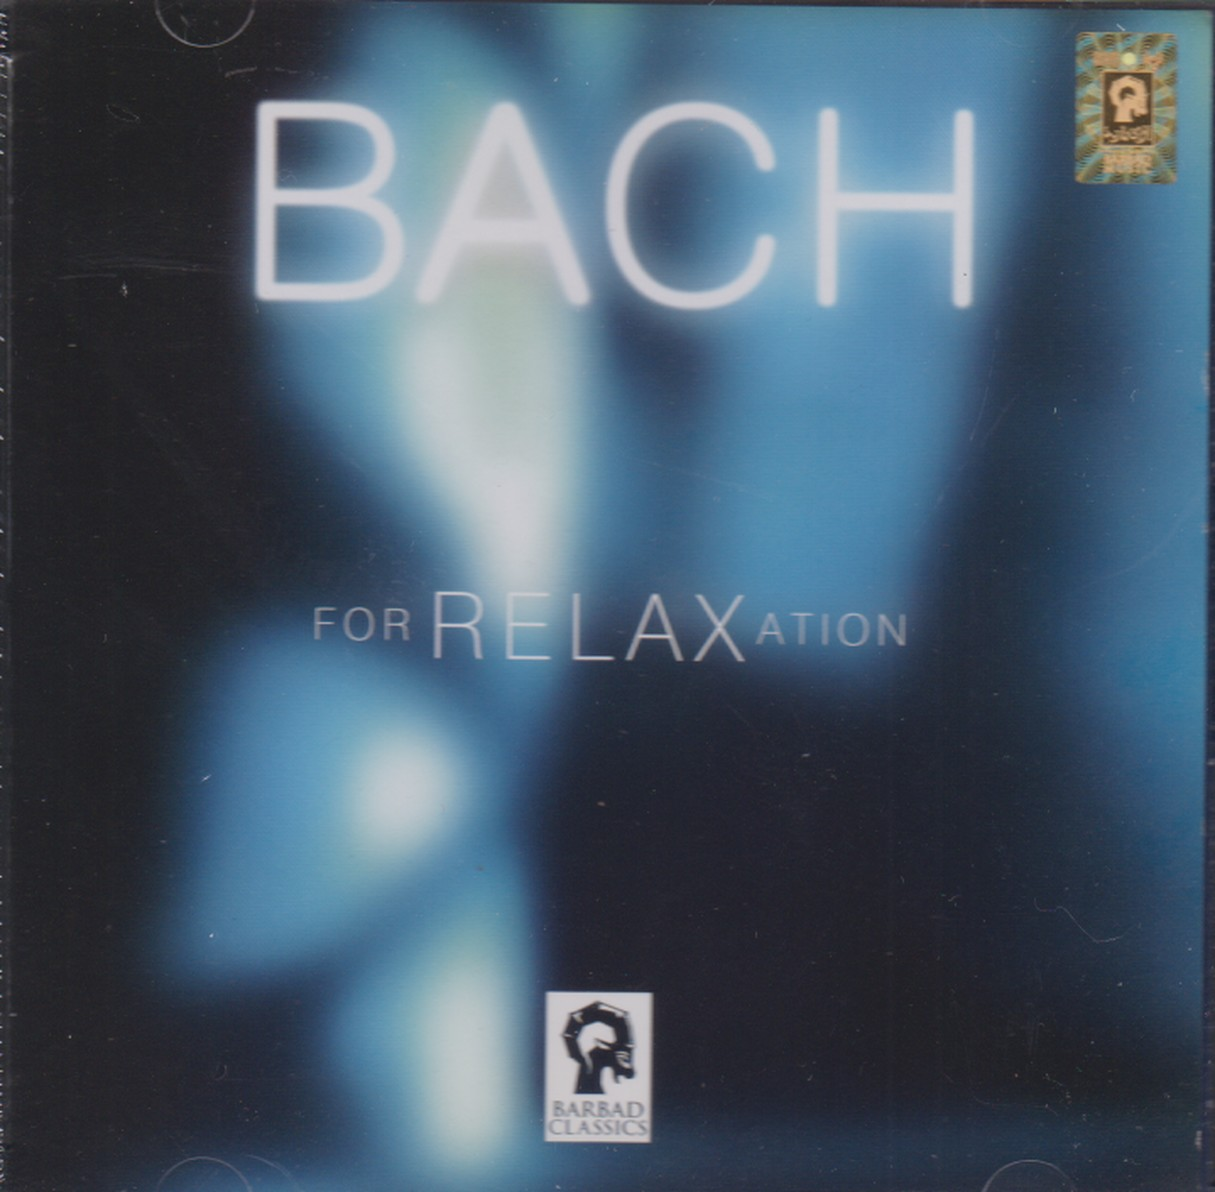 BACH for relaxtion